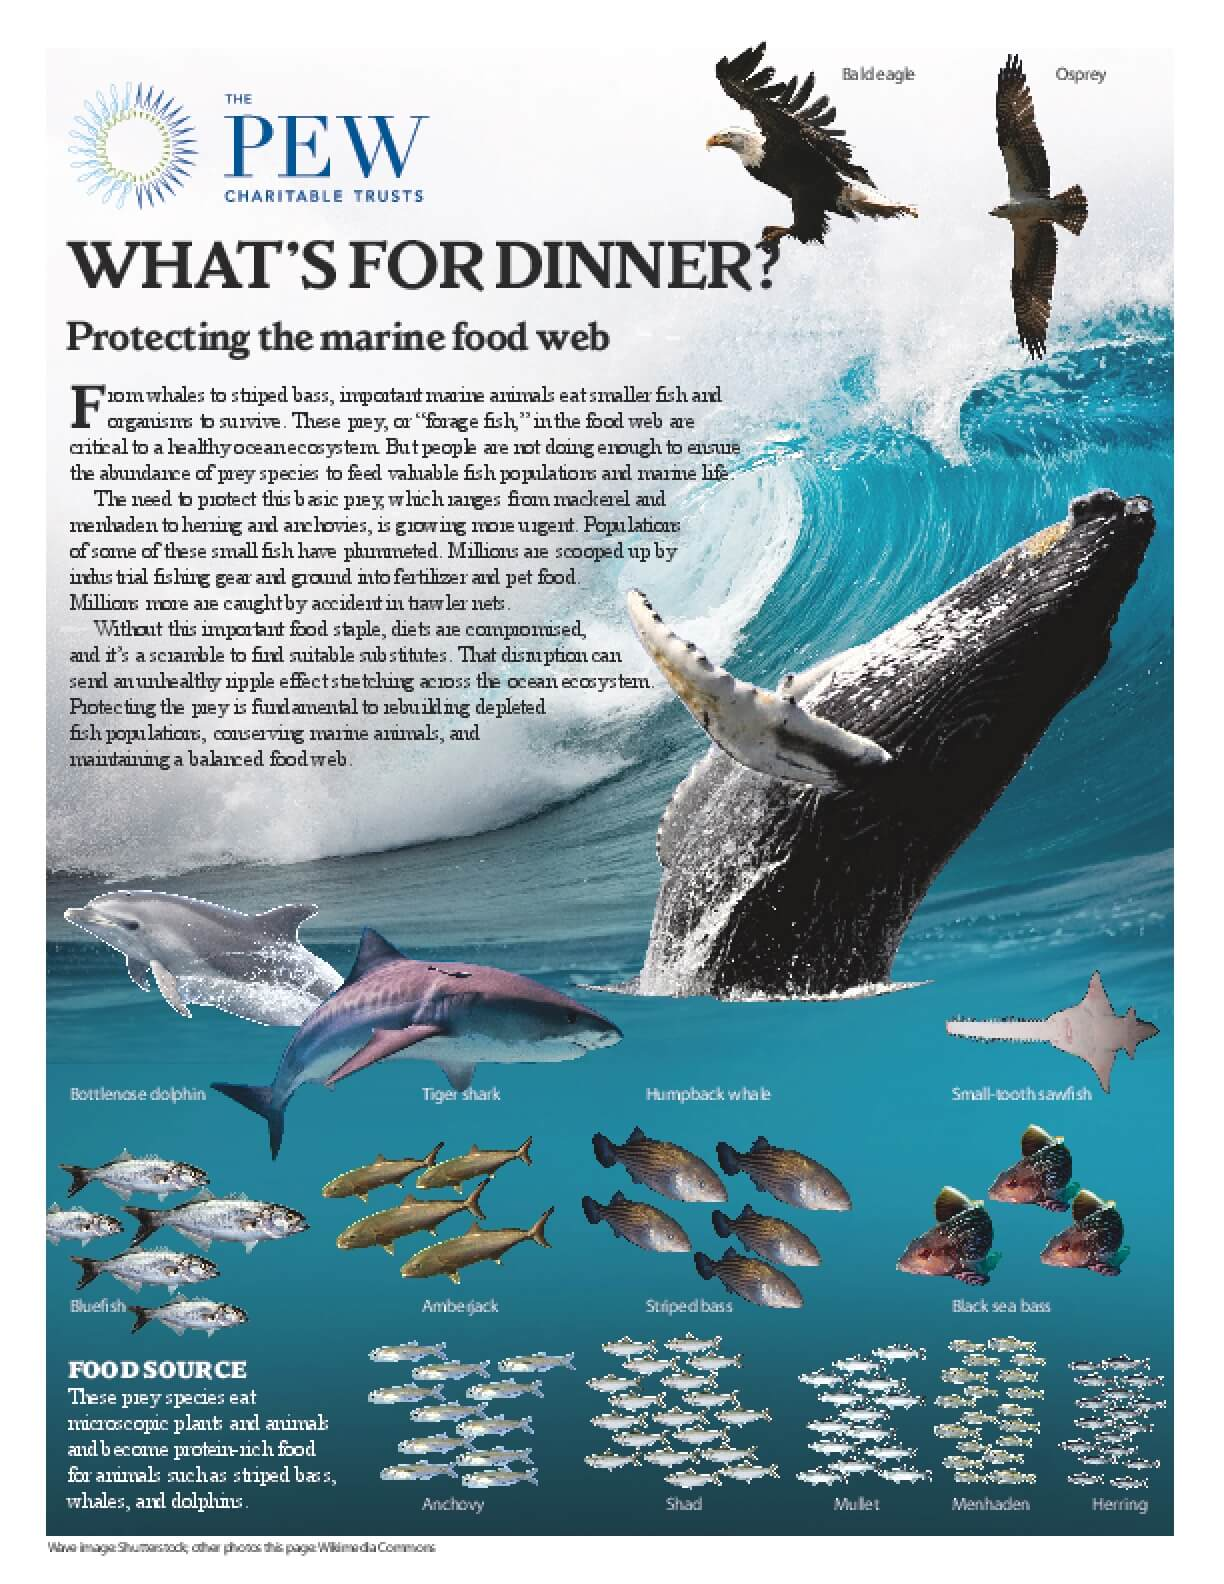 What's for Dinner? Protecting the Atlantic Ocean Marine Food Web